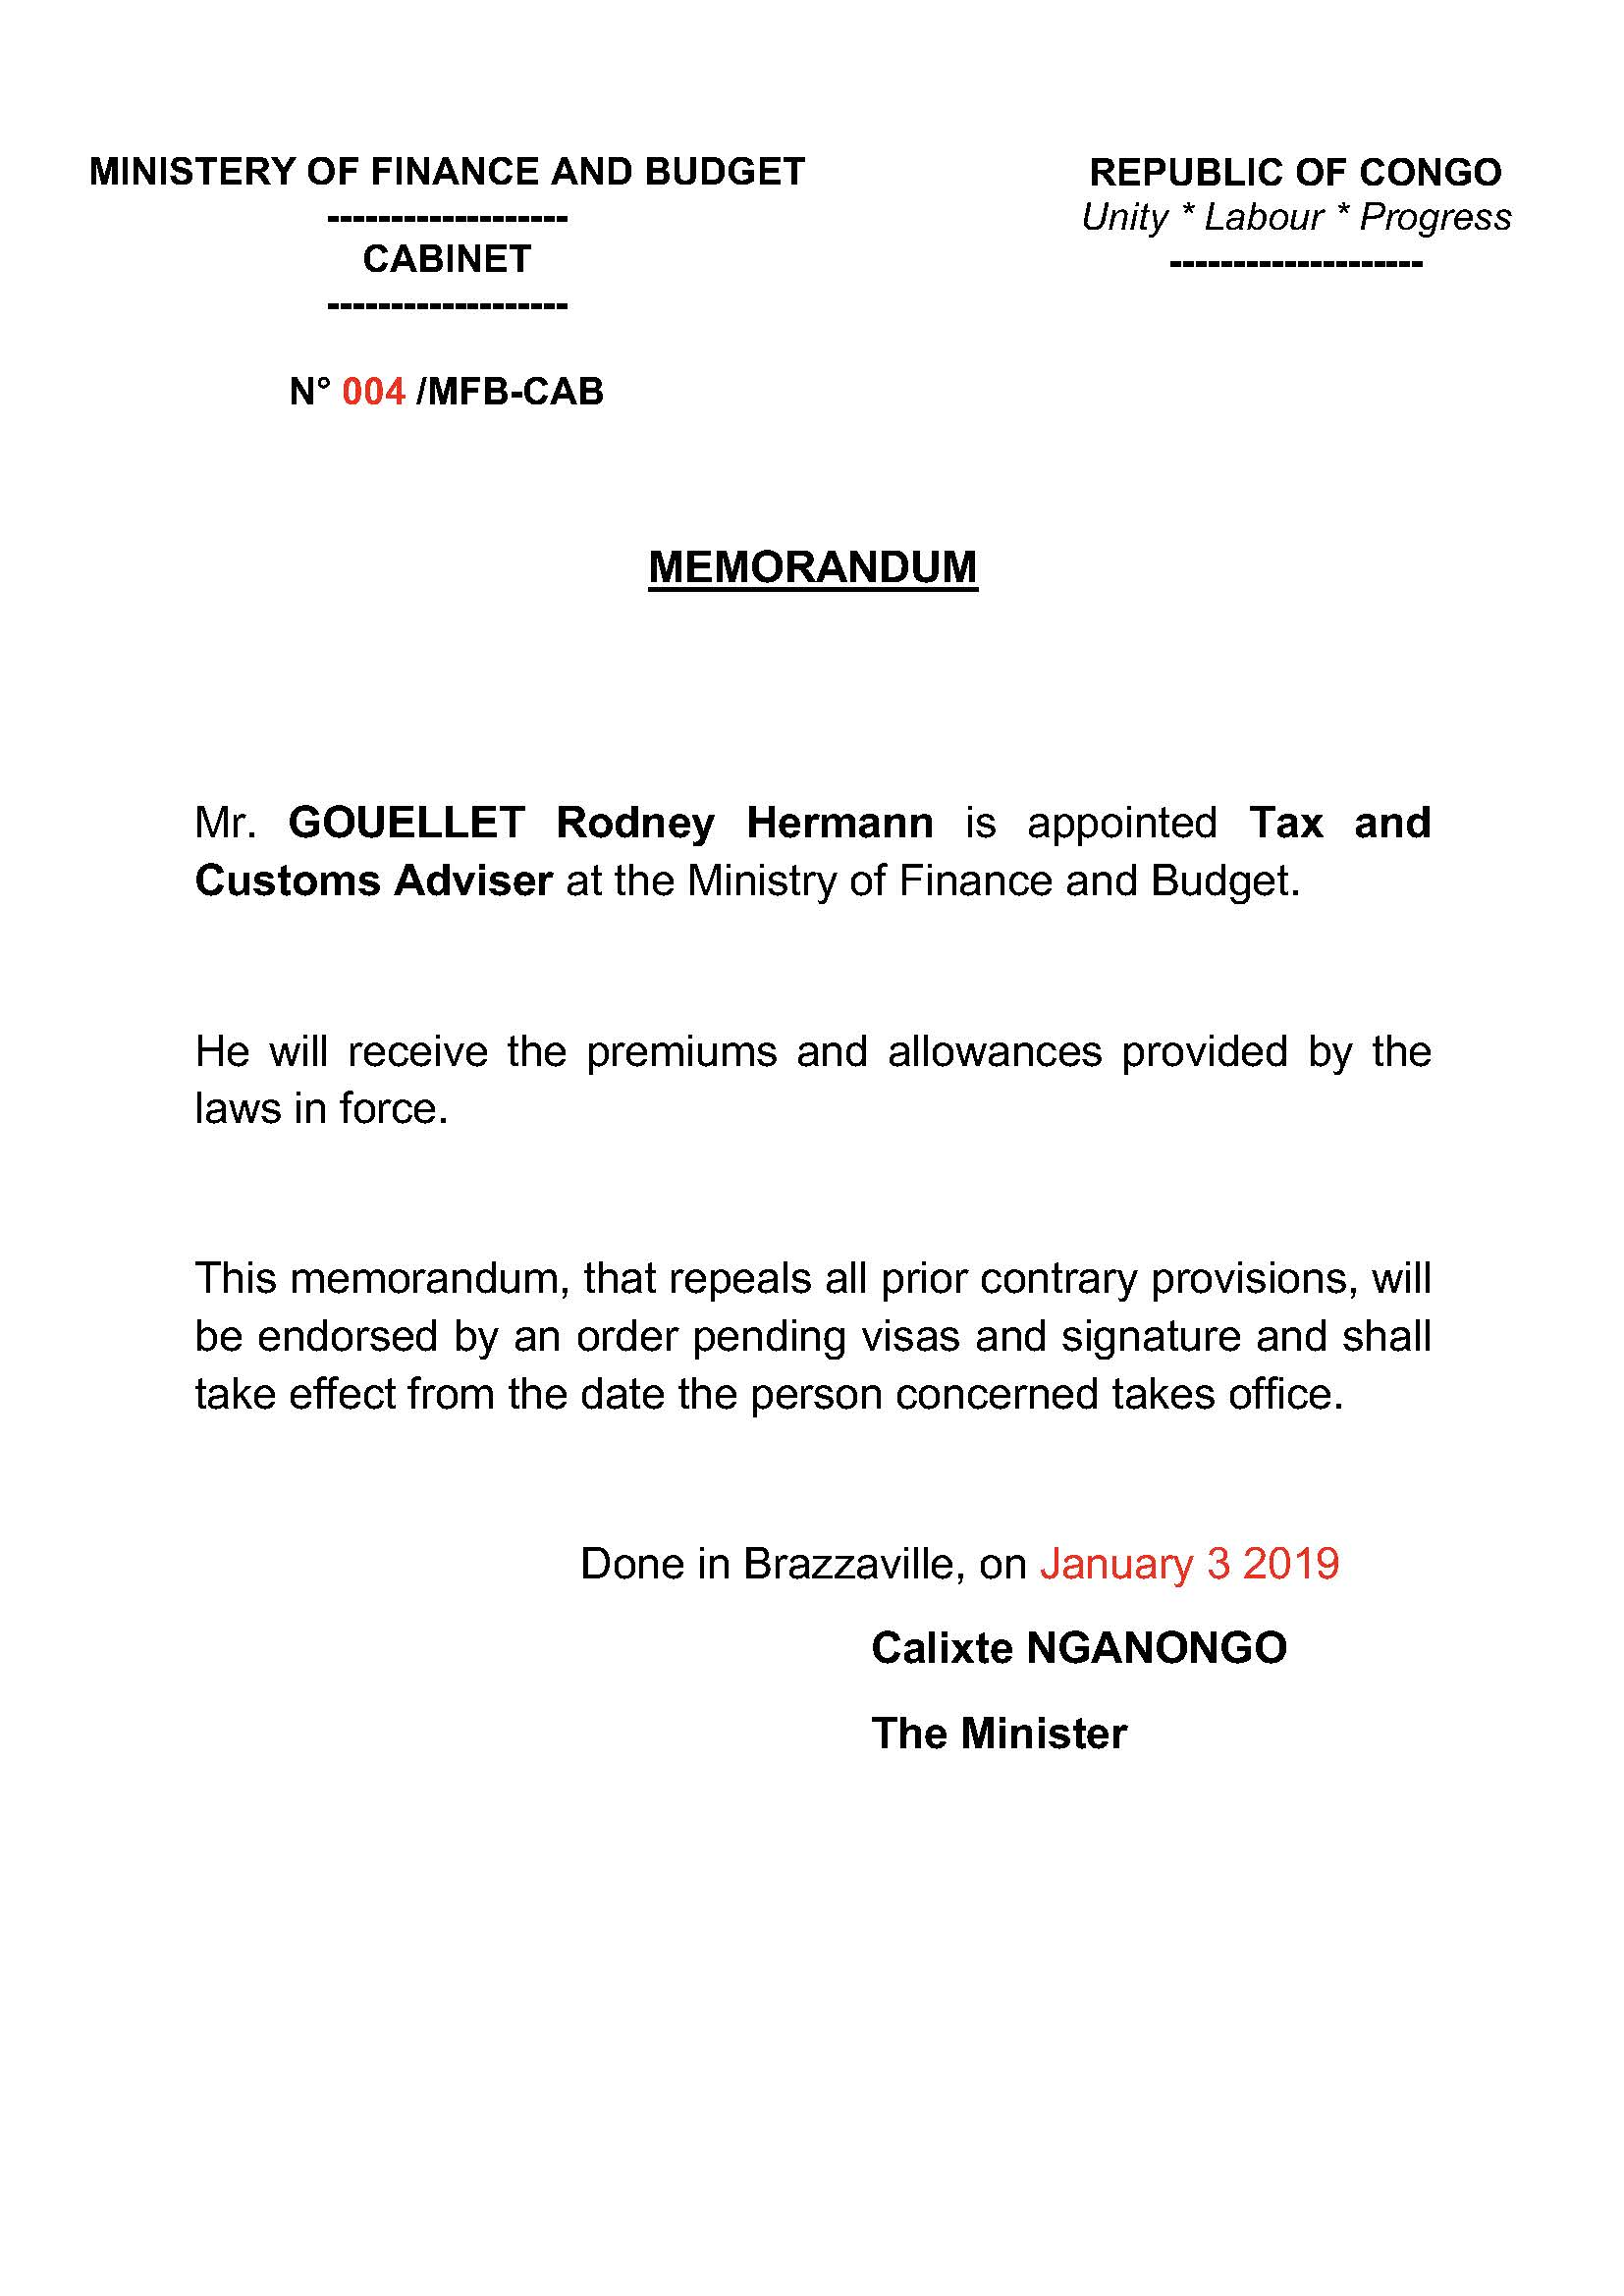 Memorandum N 004 MFB CAB Relating To The Appointment Of The